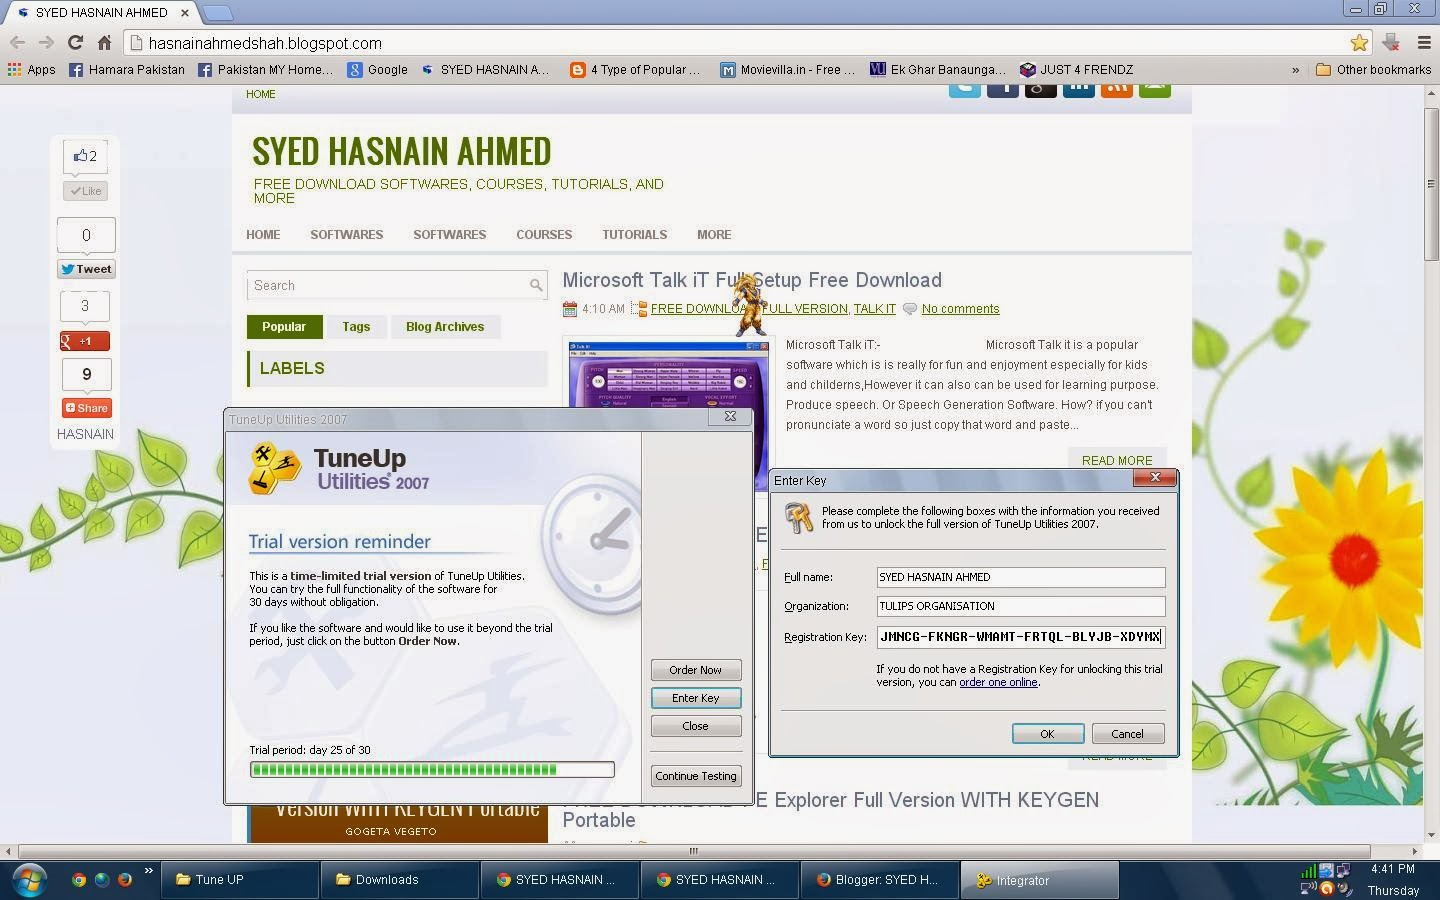 SYED HASNAIN AHMED: FREE DOWNLOAD TuneUp Utilities 2007 Full Version WITH KEY